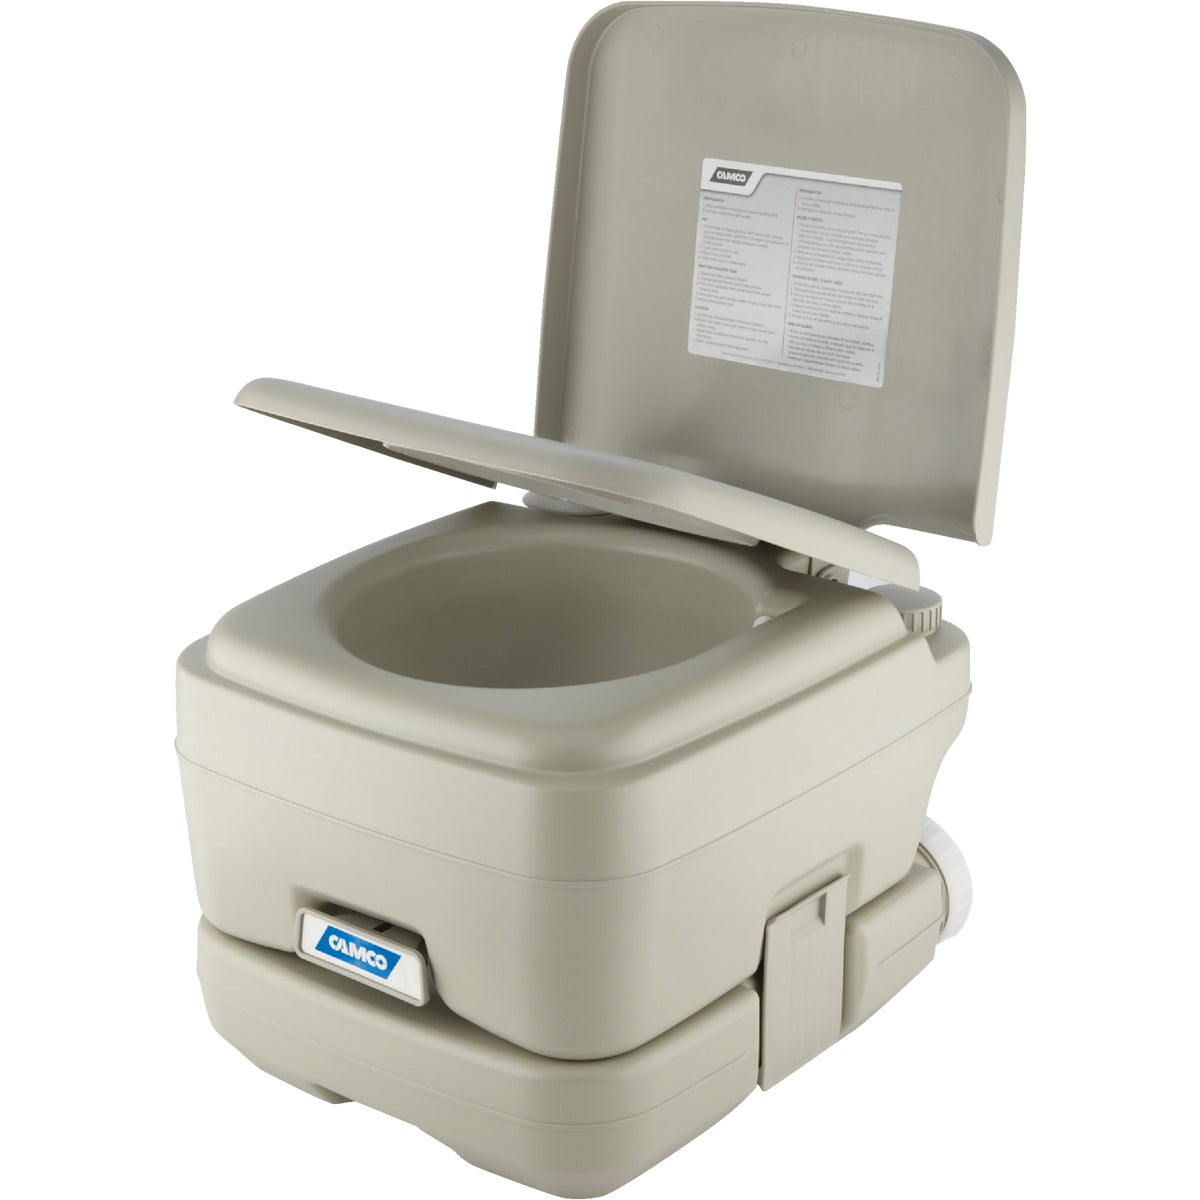 2.6GAL PORTABLE TOILET - 41531 by Camco Mfg.